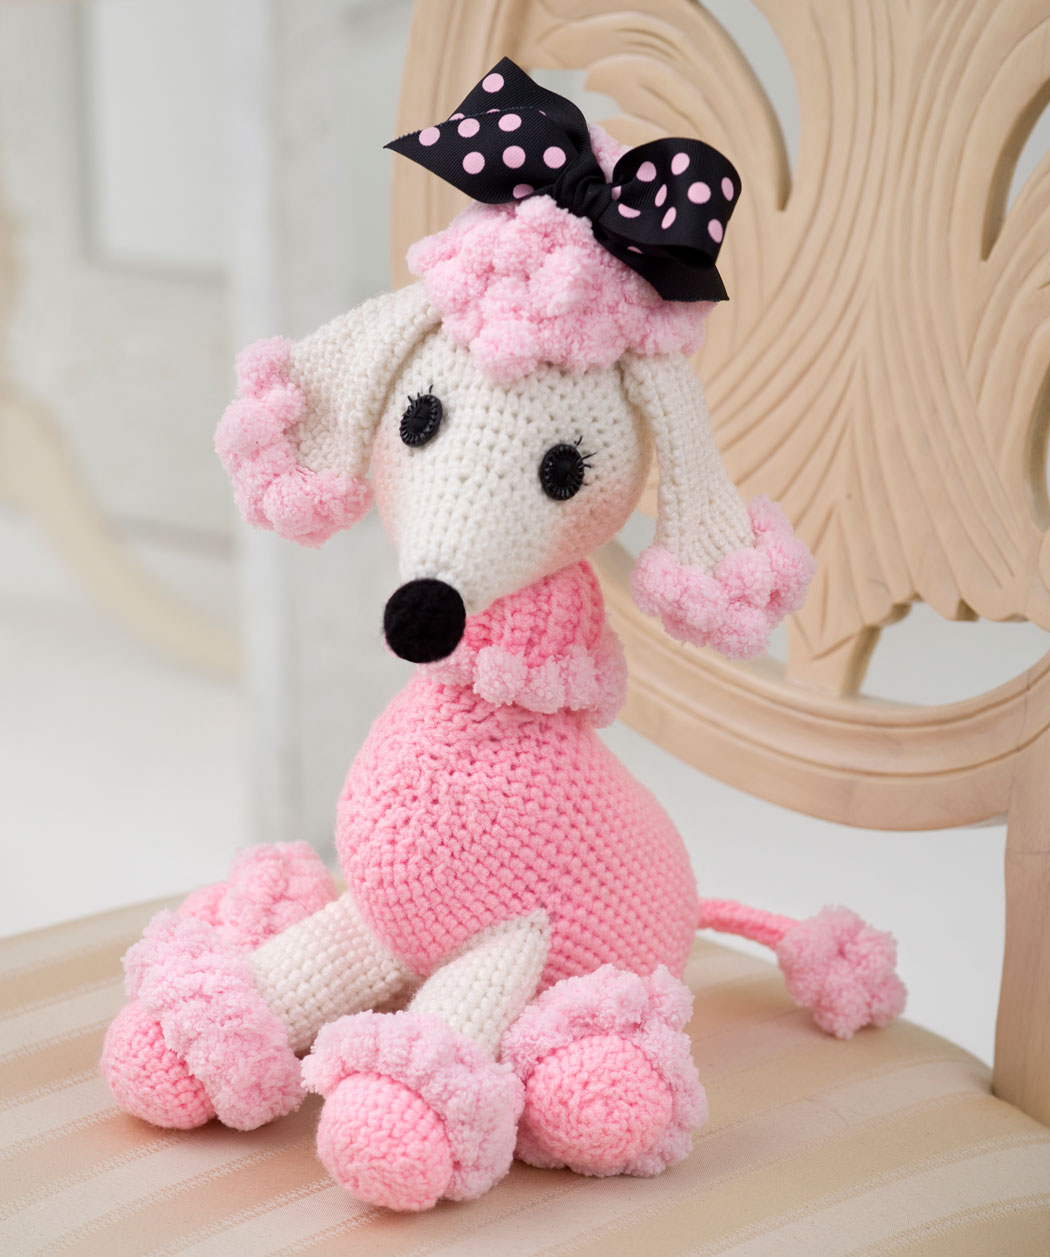 Marvelous poodles to knit and crochet free patterns free knit poodle pattern wr2157 bankloansurffo Choice Image